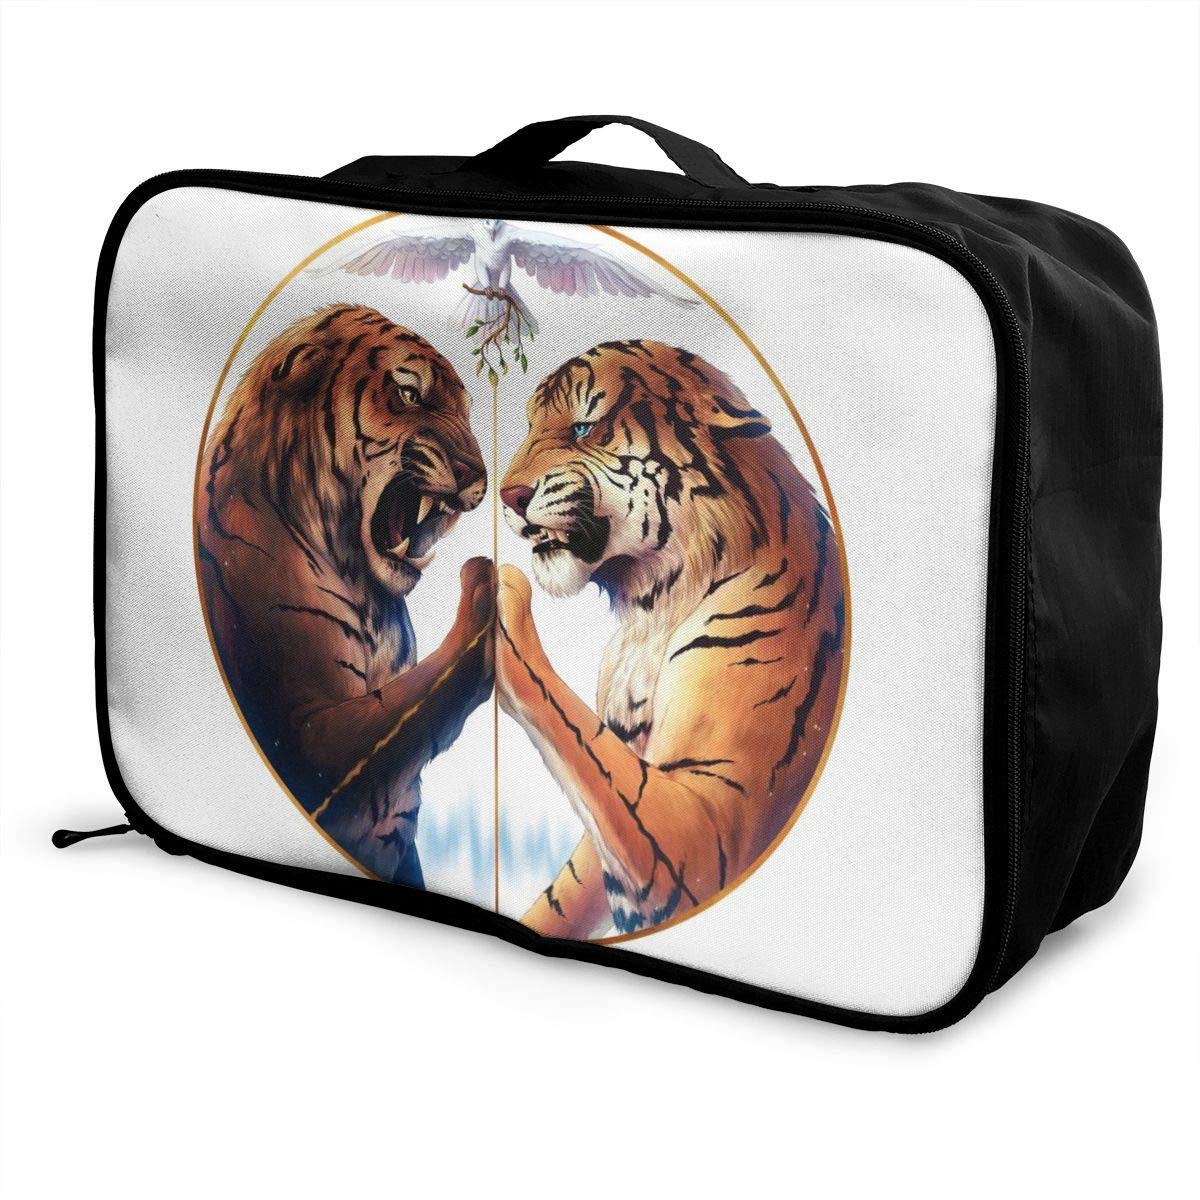 Tiger Peace Circle Eternity Yin And Yang Pigeon Customize Casual Portable Travel Bag Suitcase Storage Bag Luggage Packing Tote Bag Trolley Bag